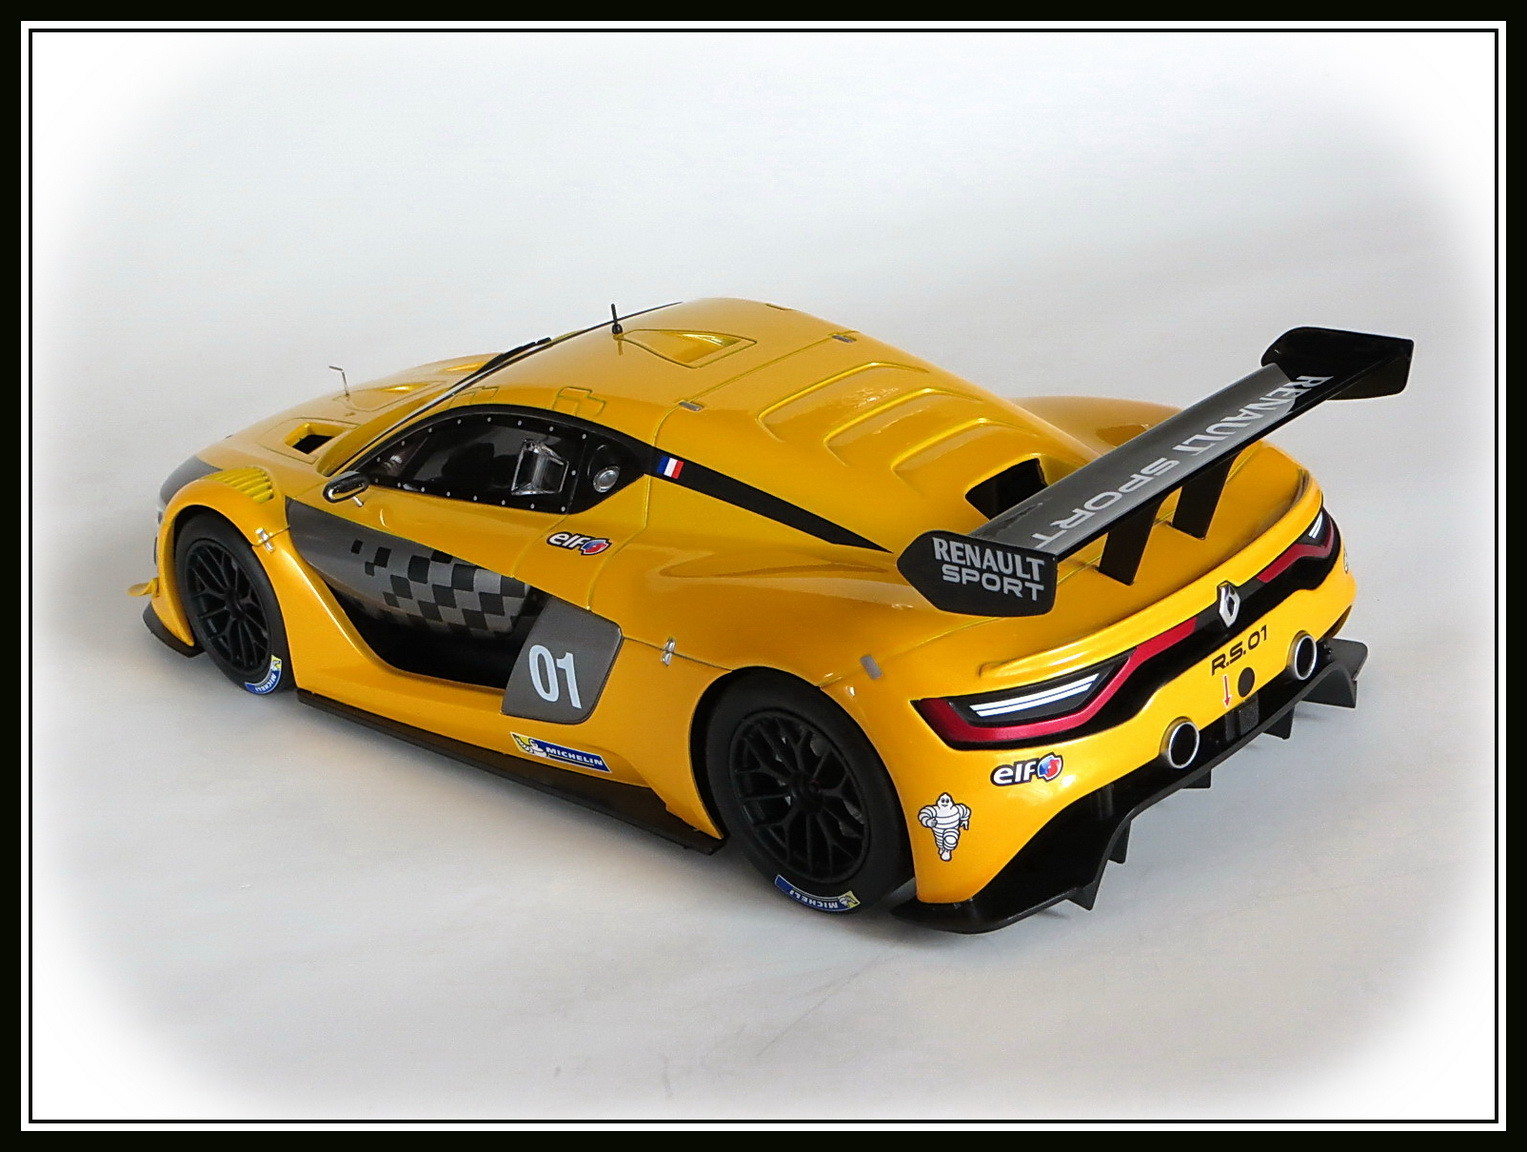 renault-rs 01-2015-028